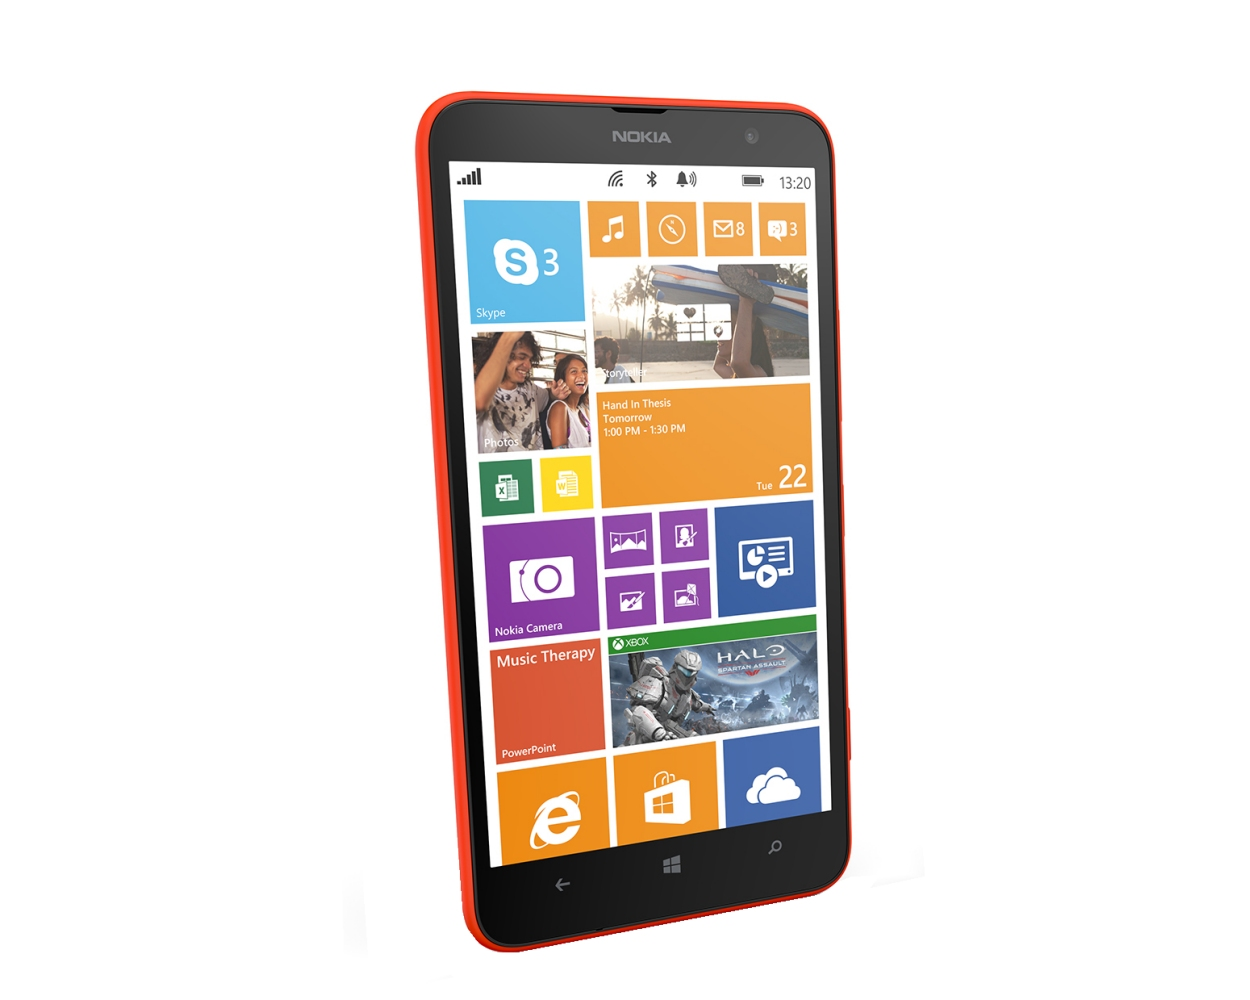 Review Nokia Lumia 1320 Smartphone Reviews 130 Kamera New In Sample Courtesy Of Germany